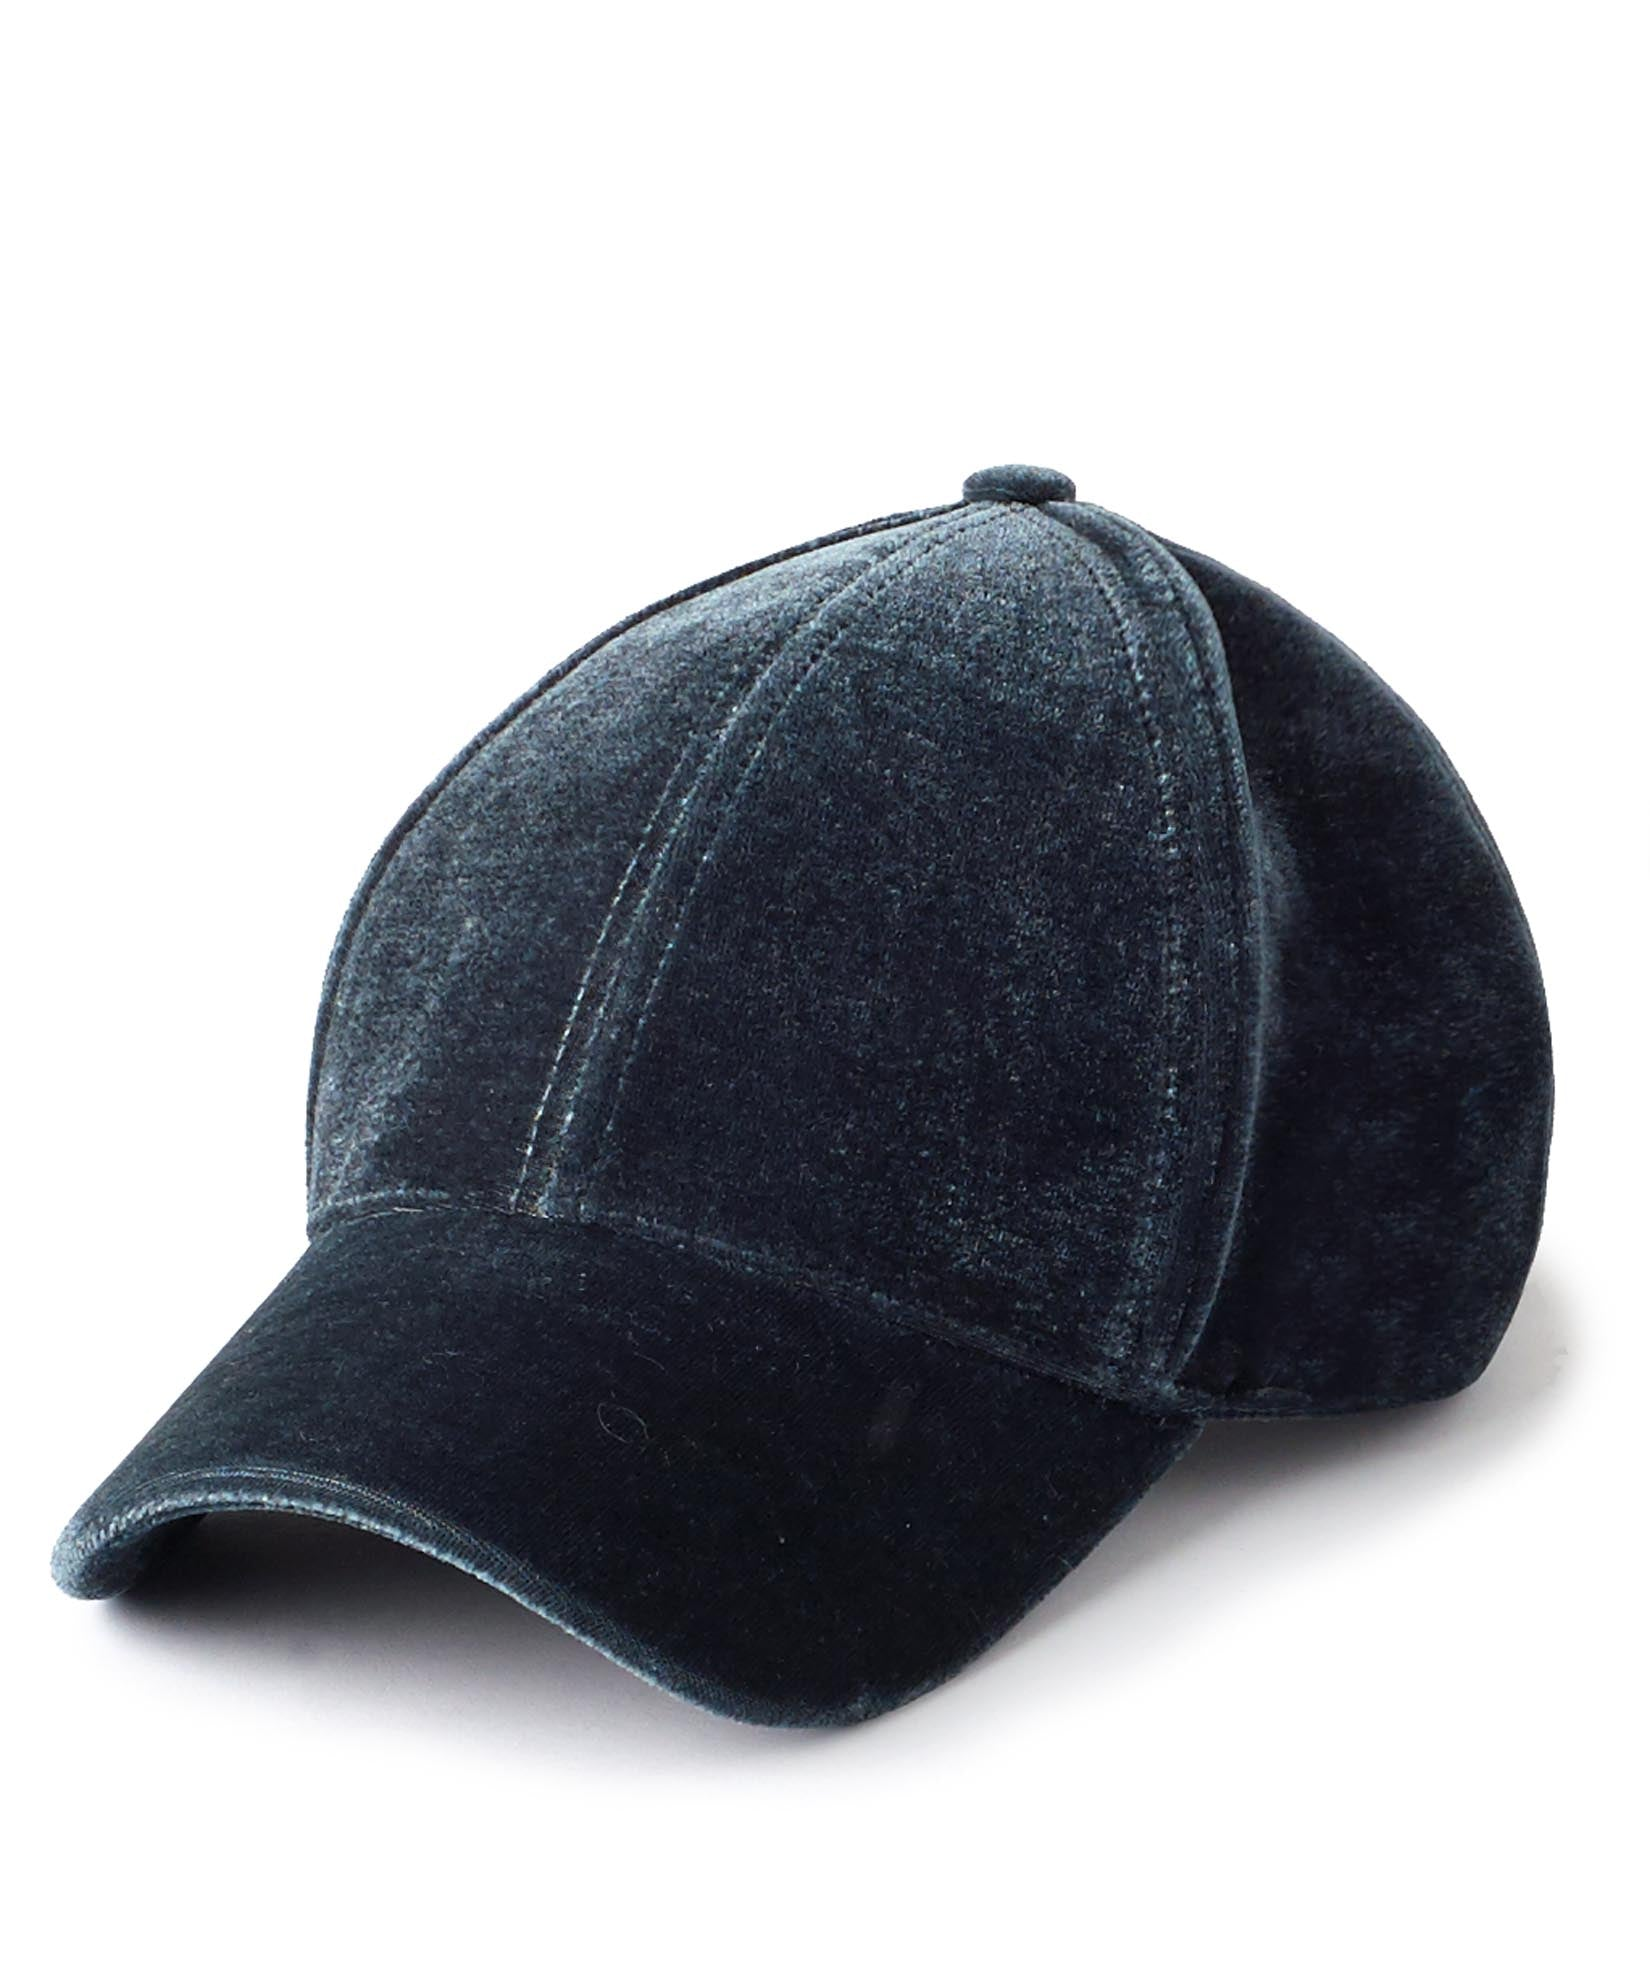 Heather Grey - Velvet Baseball Cap